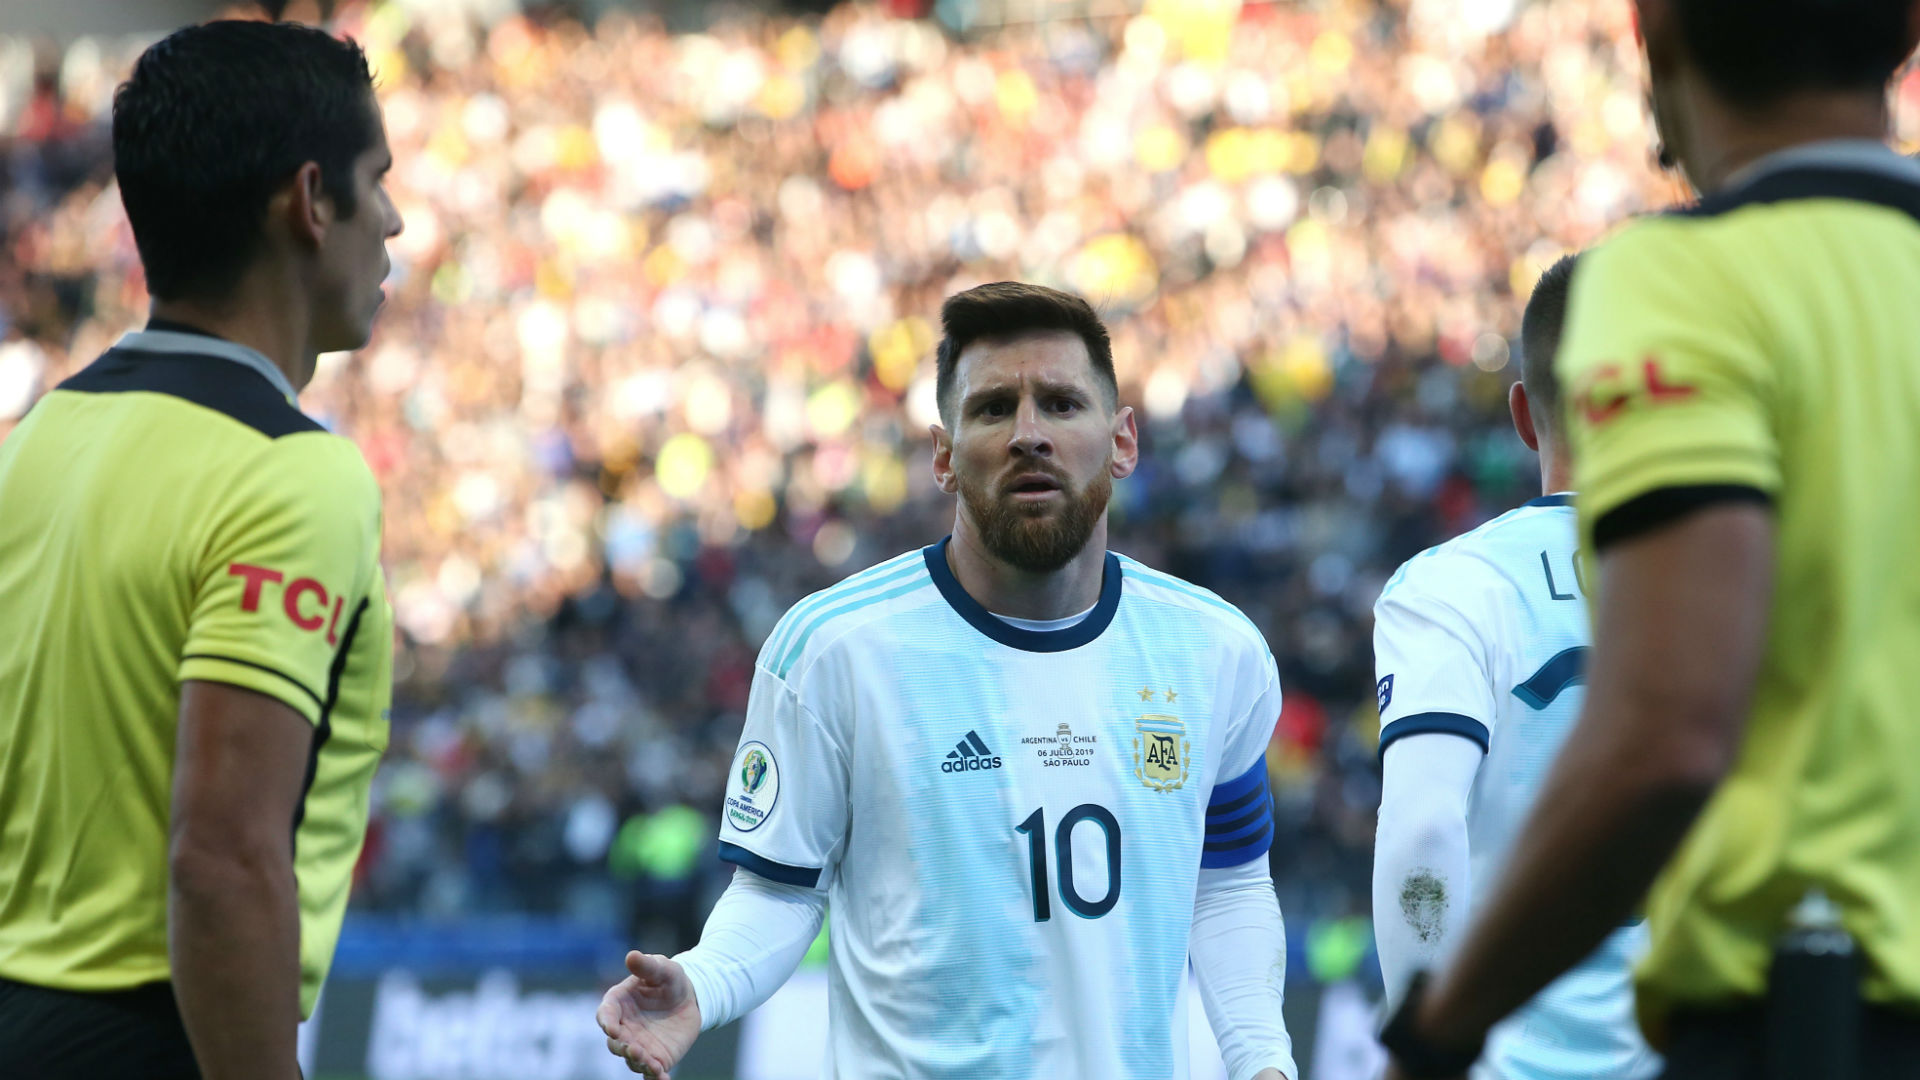 'I don't understand what Messi did to get red' - Scaloni backs captain and slams VAR use at Copa